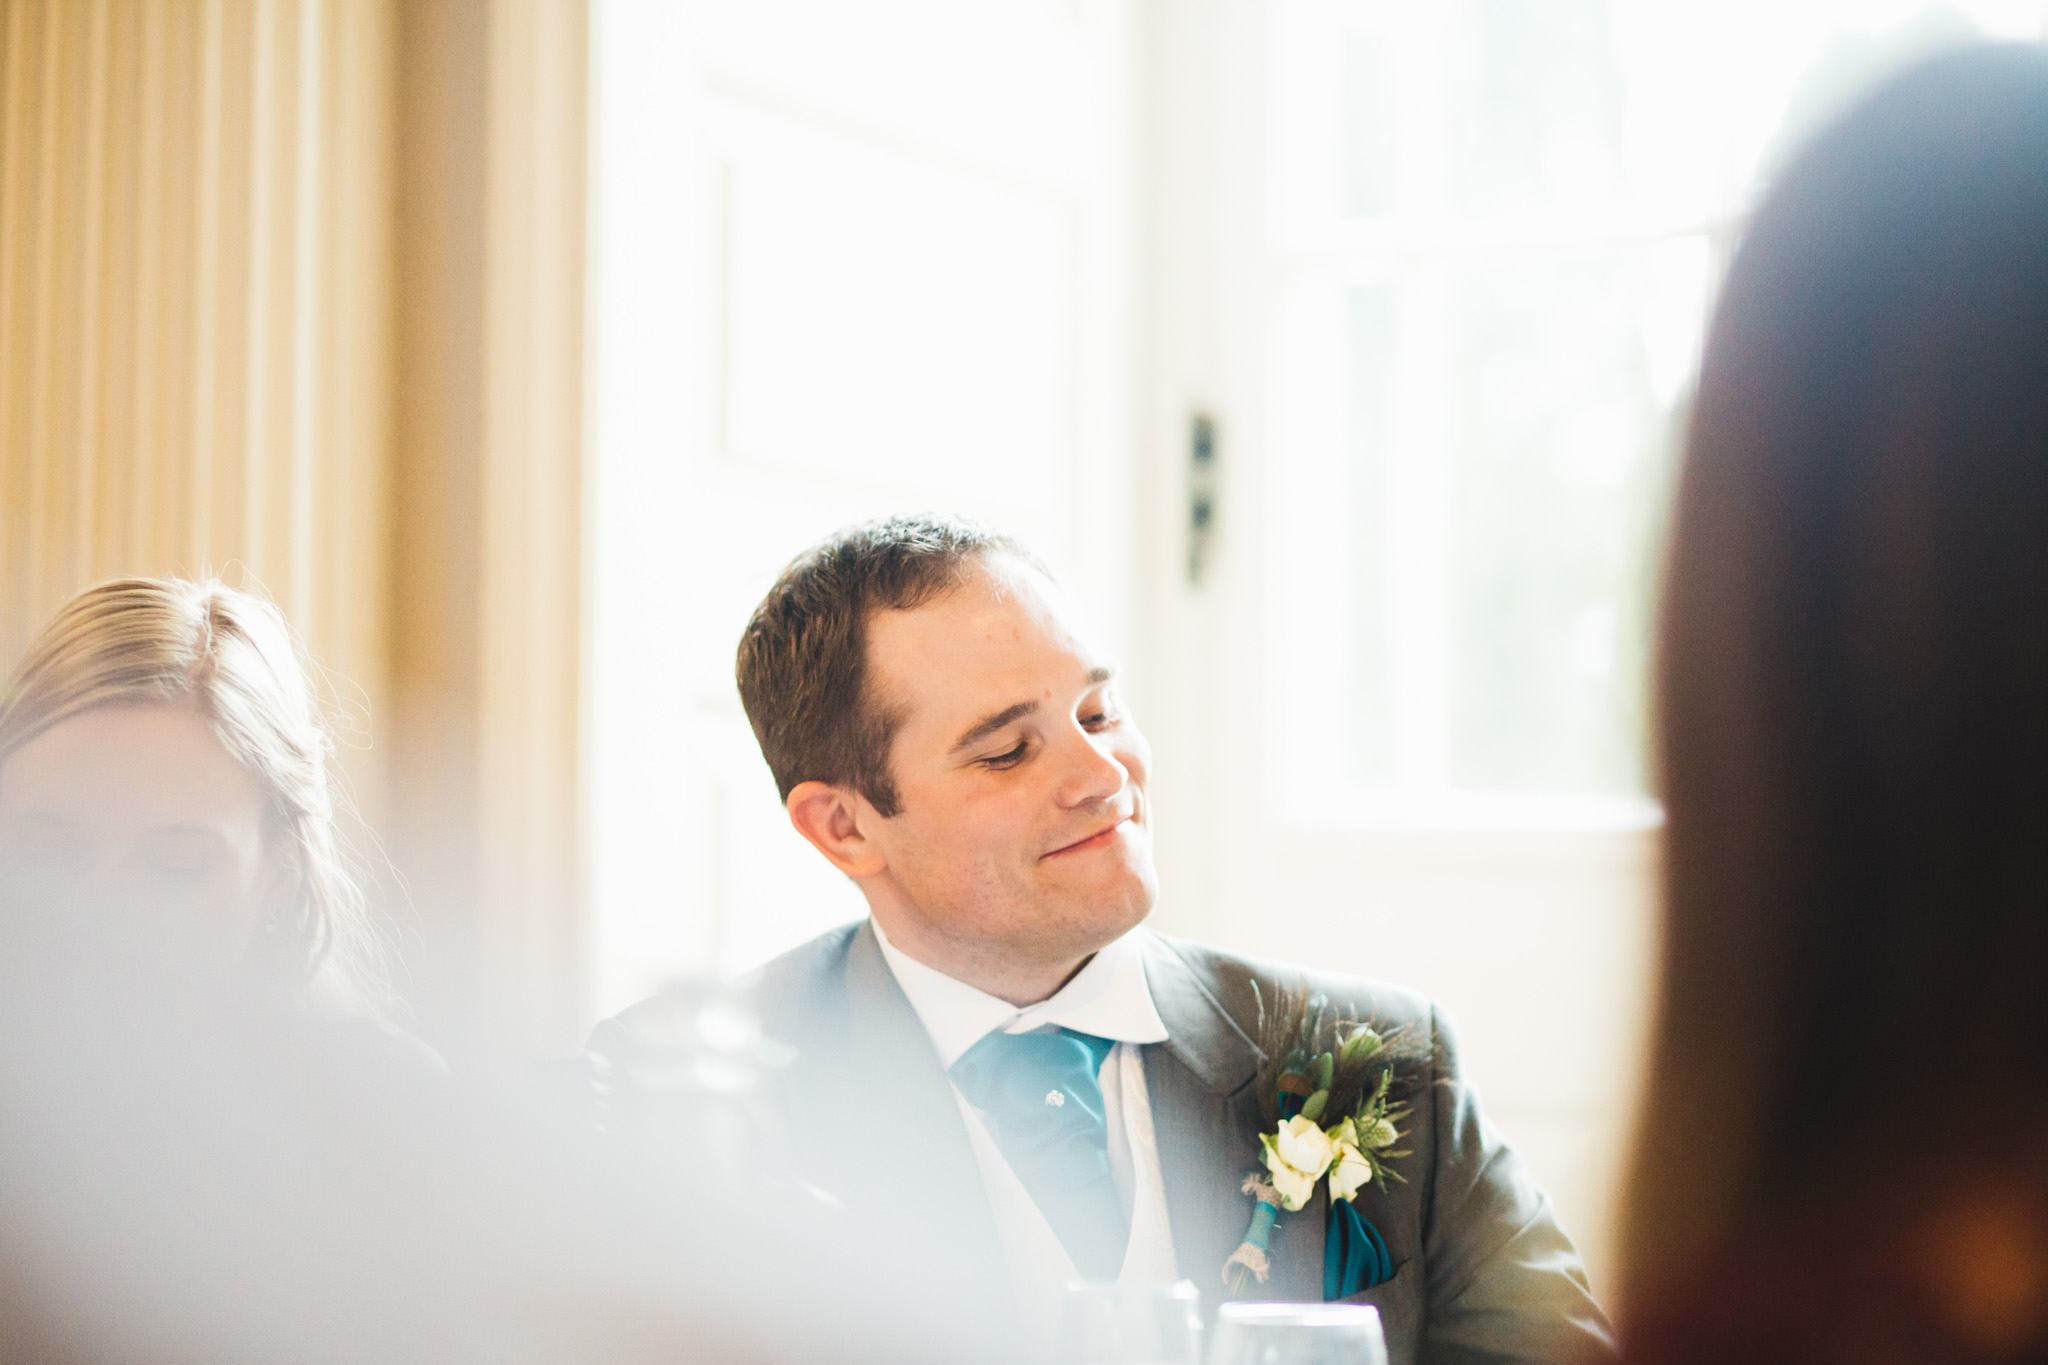 cat-lane-weddings__chicheley-hall-wedding-photography__clw__1746__38A2144.jpg